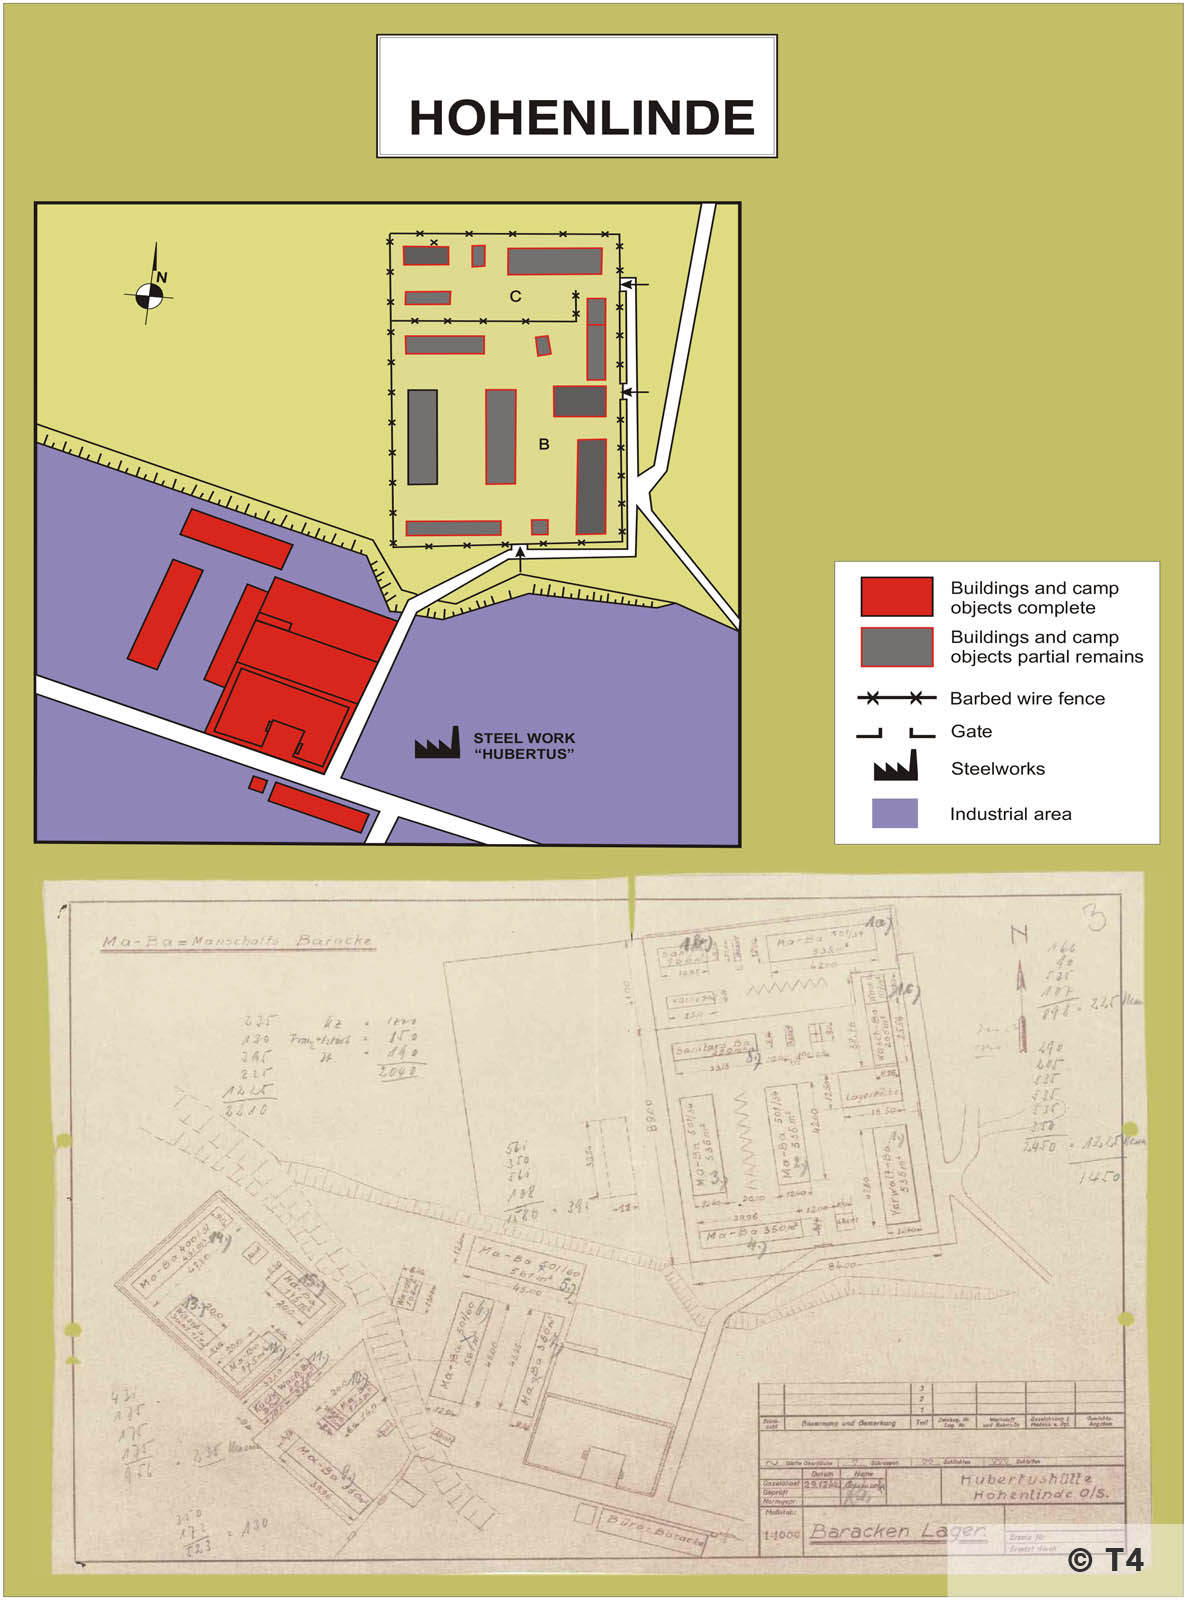 Map of sub camp Hohenlinde. T4